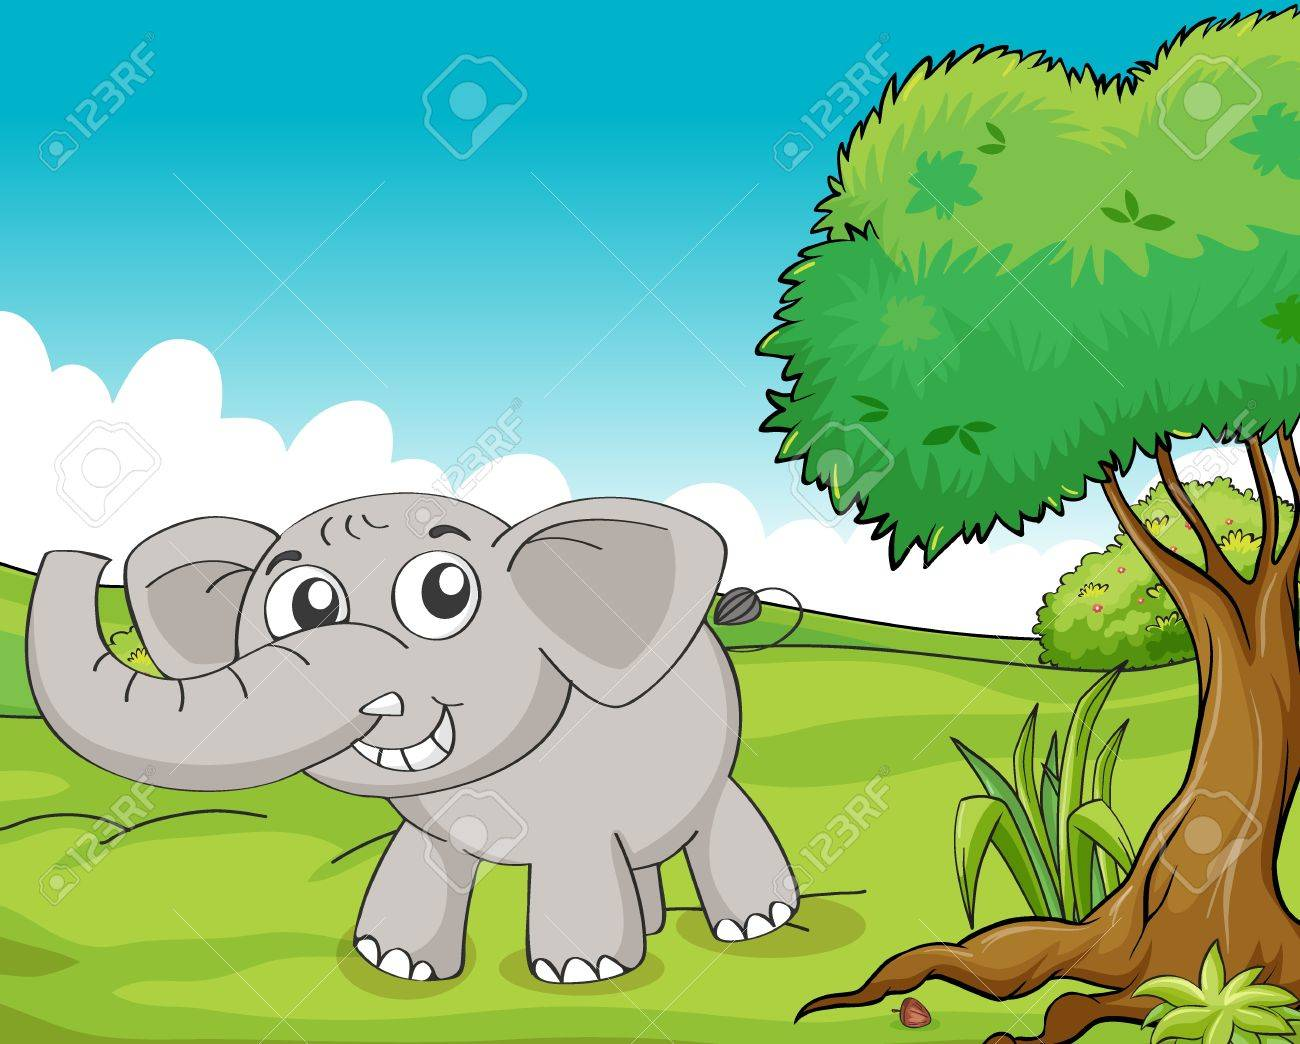 Illustration of a little gray elephant in the woods Stock Vector - 17358084